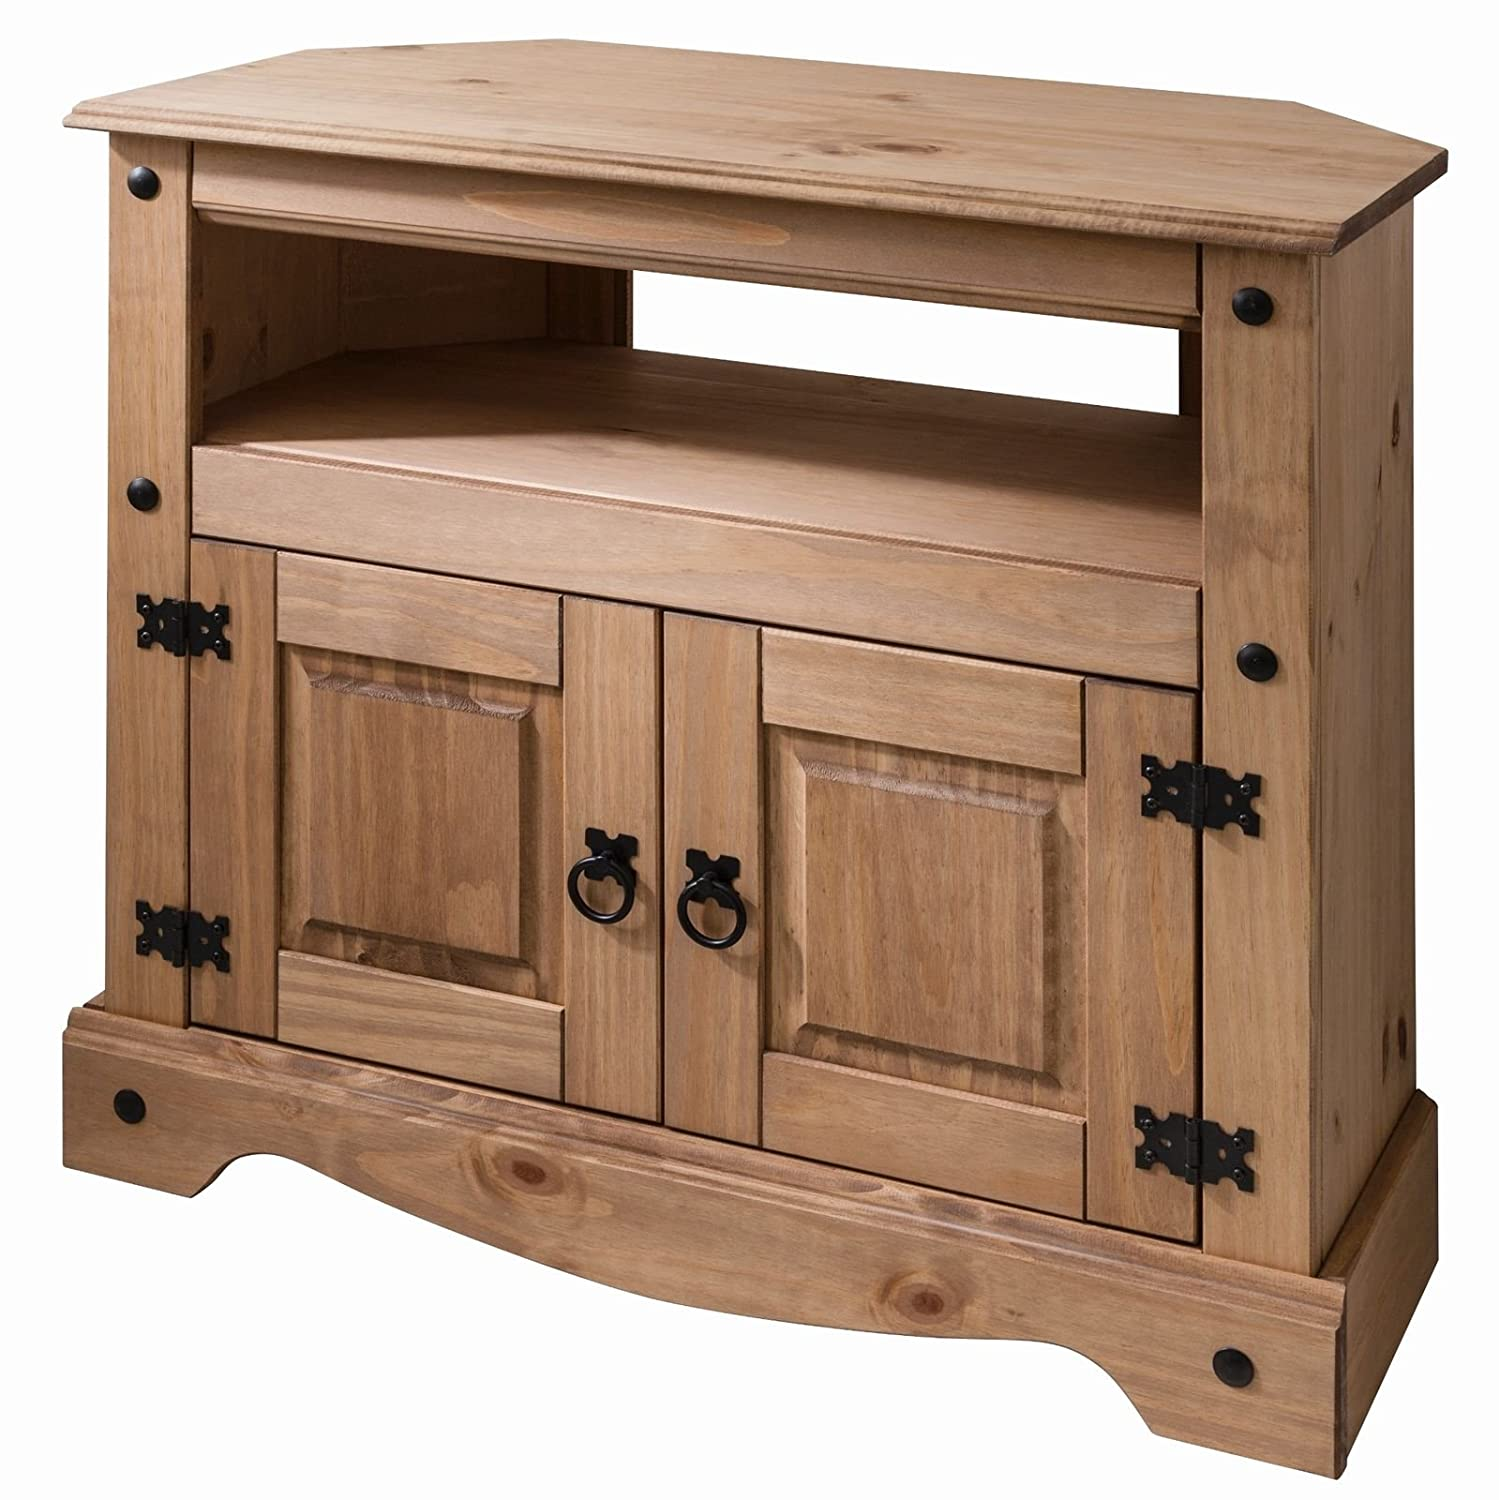 Corona Wooden TV Stand Corner Unit Cabinet - Solid Wood Mews P2001-CR